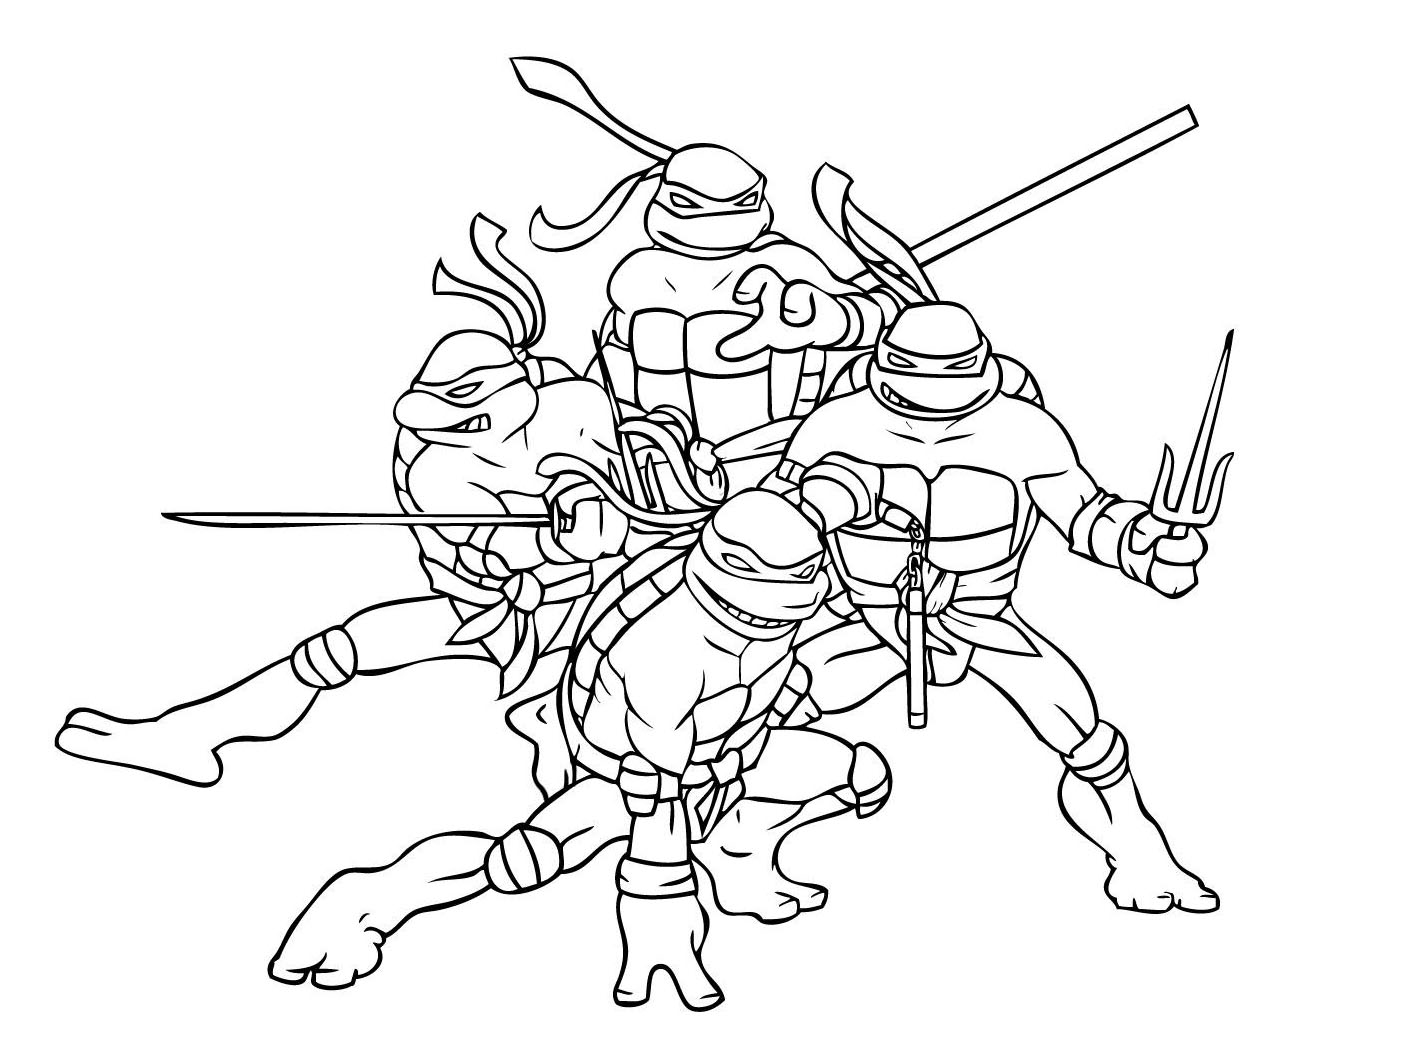 Ninja Turtles Superheroes Printable Coloring Pages